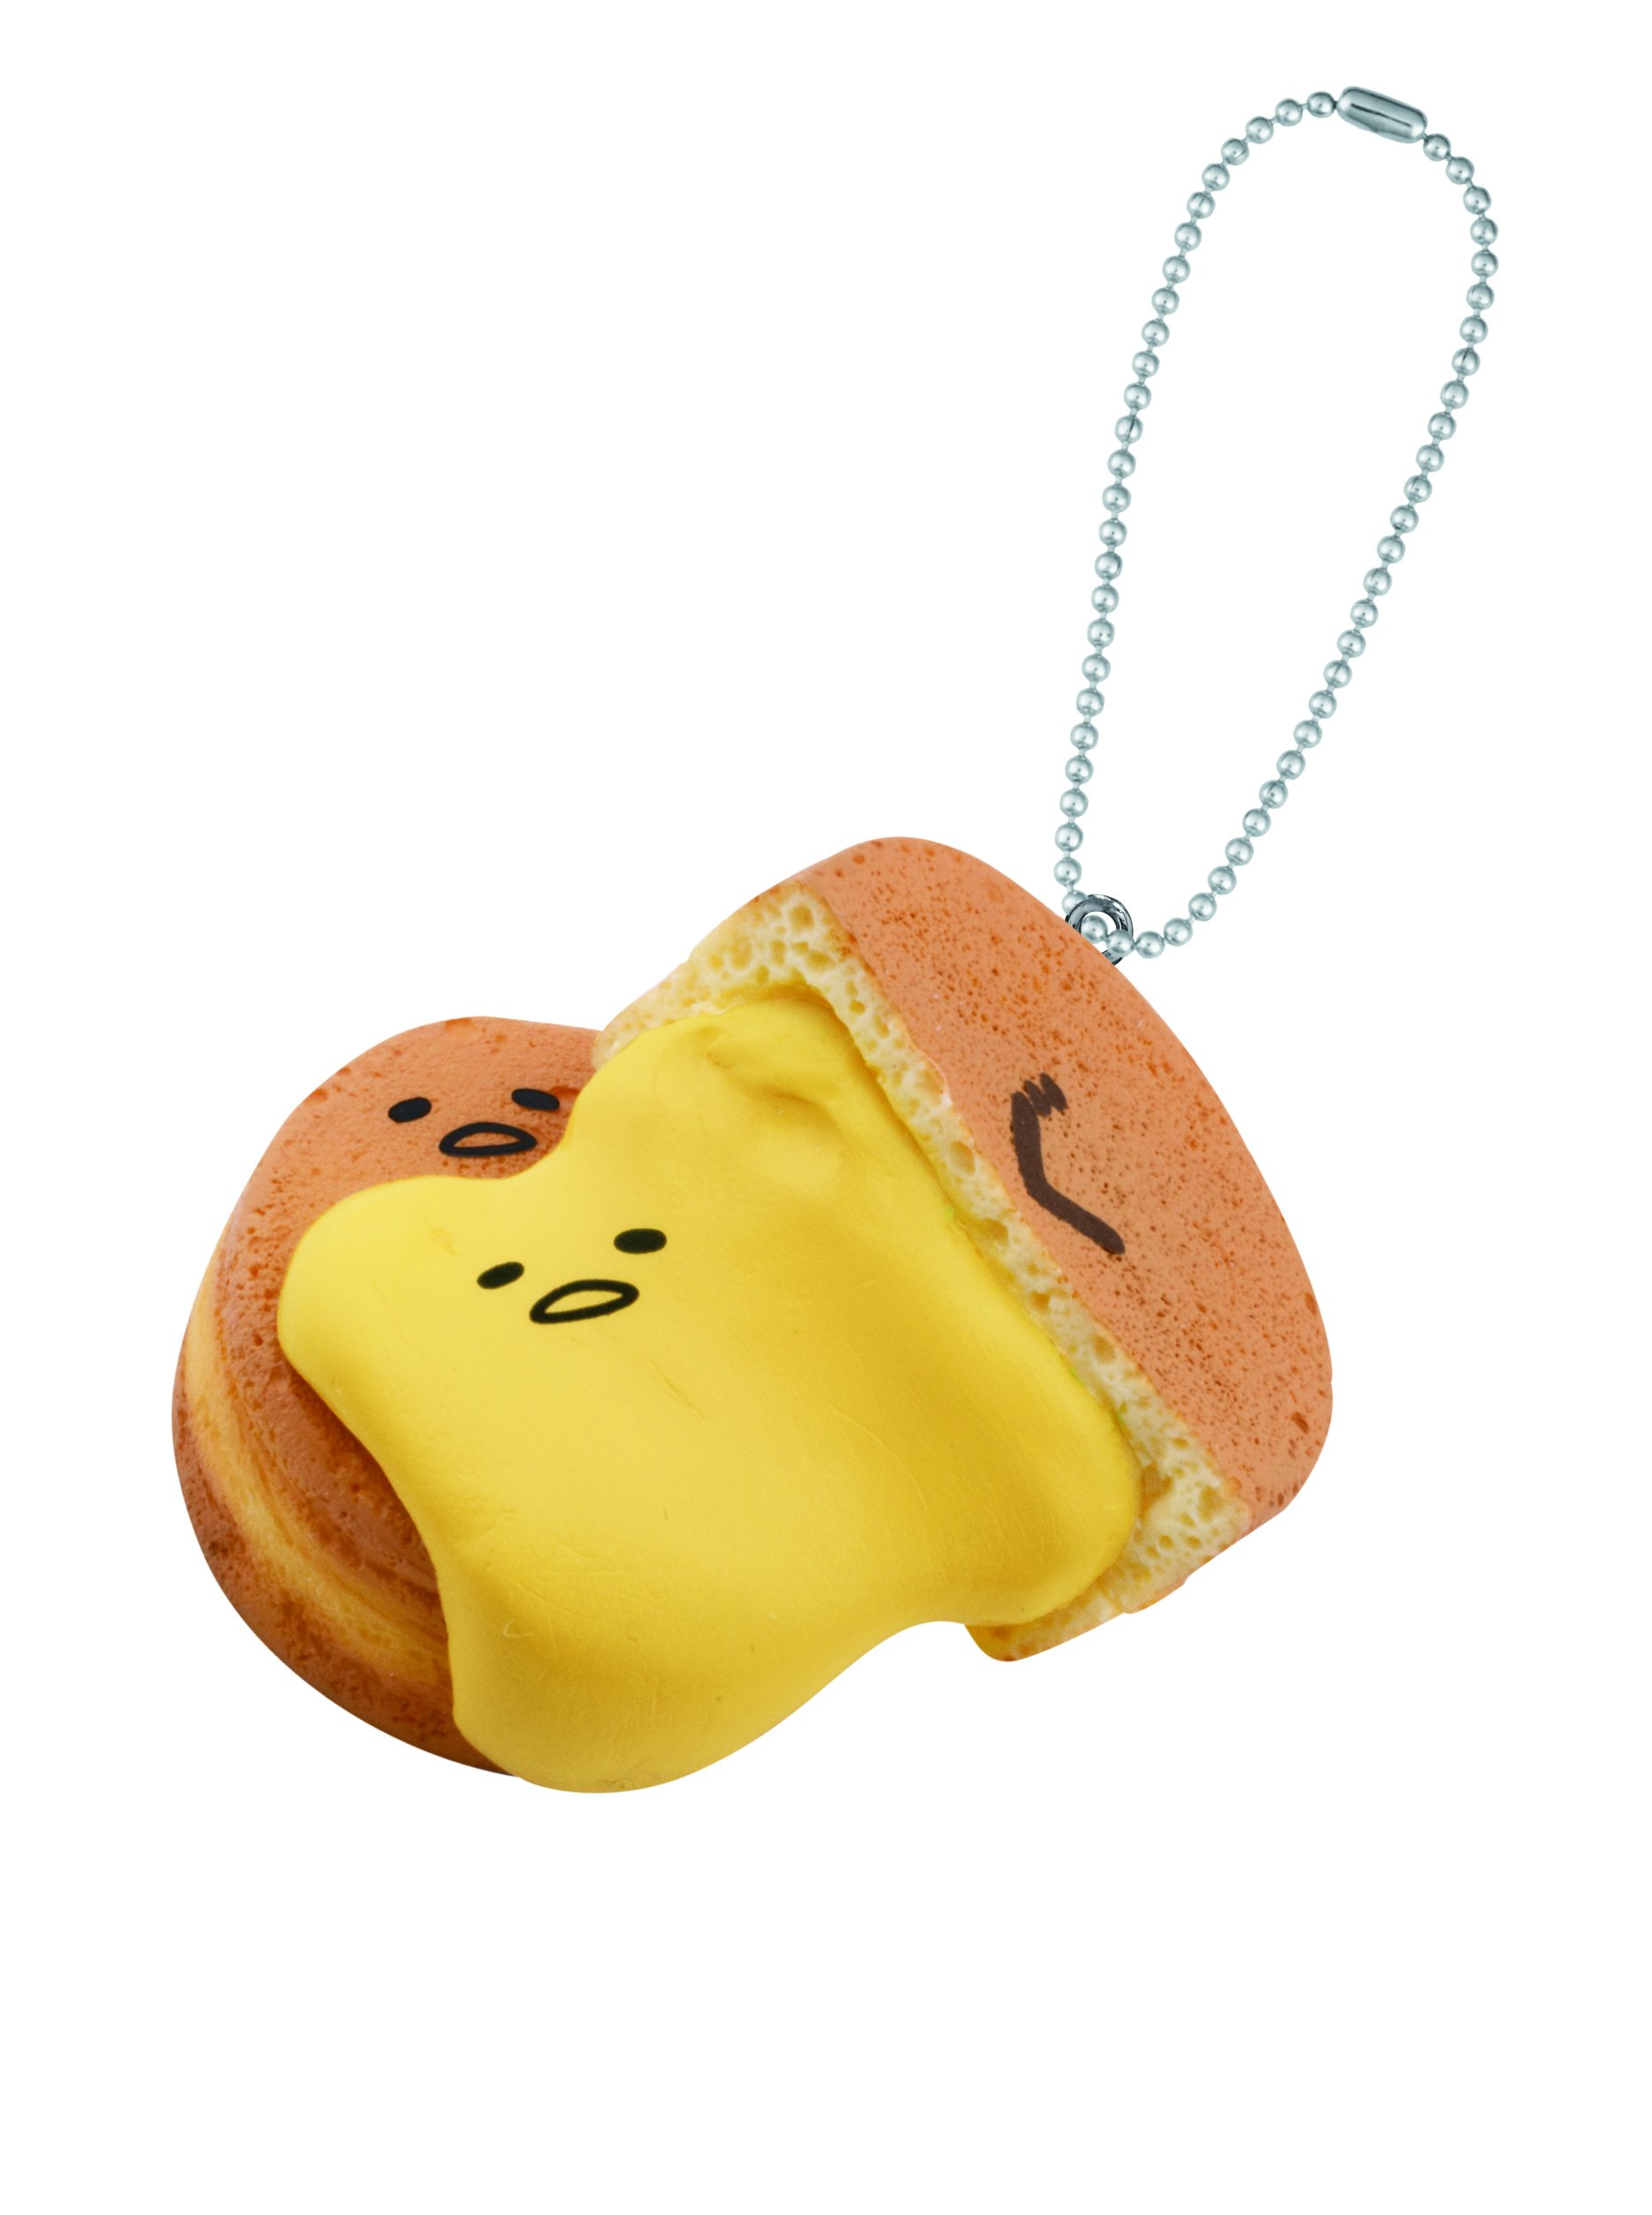 Full set Box 8 packages miniature figure Gudetama Japanese Festival Mascot by Re-Ment from Japan by Re-Ment (Image #7)